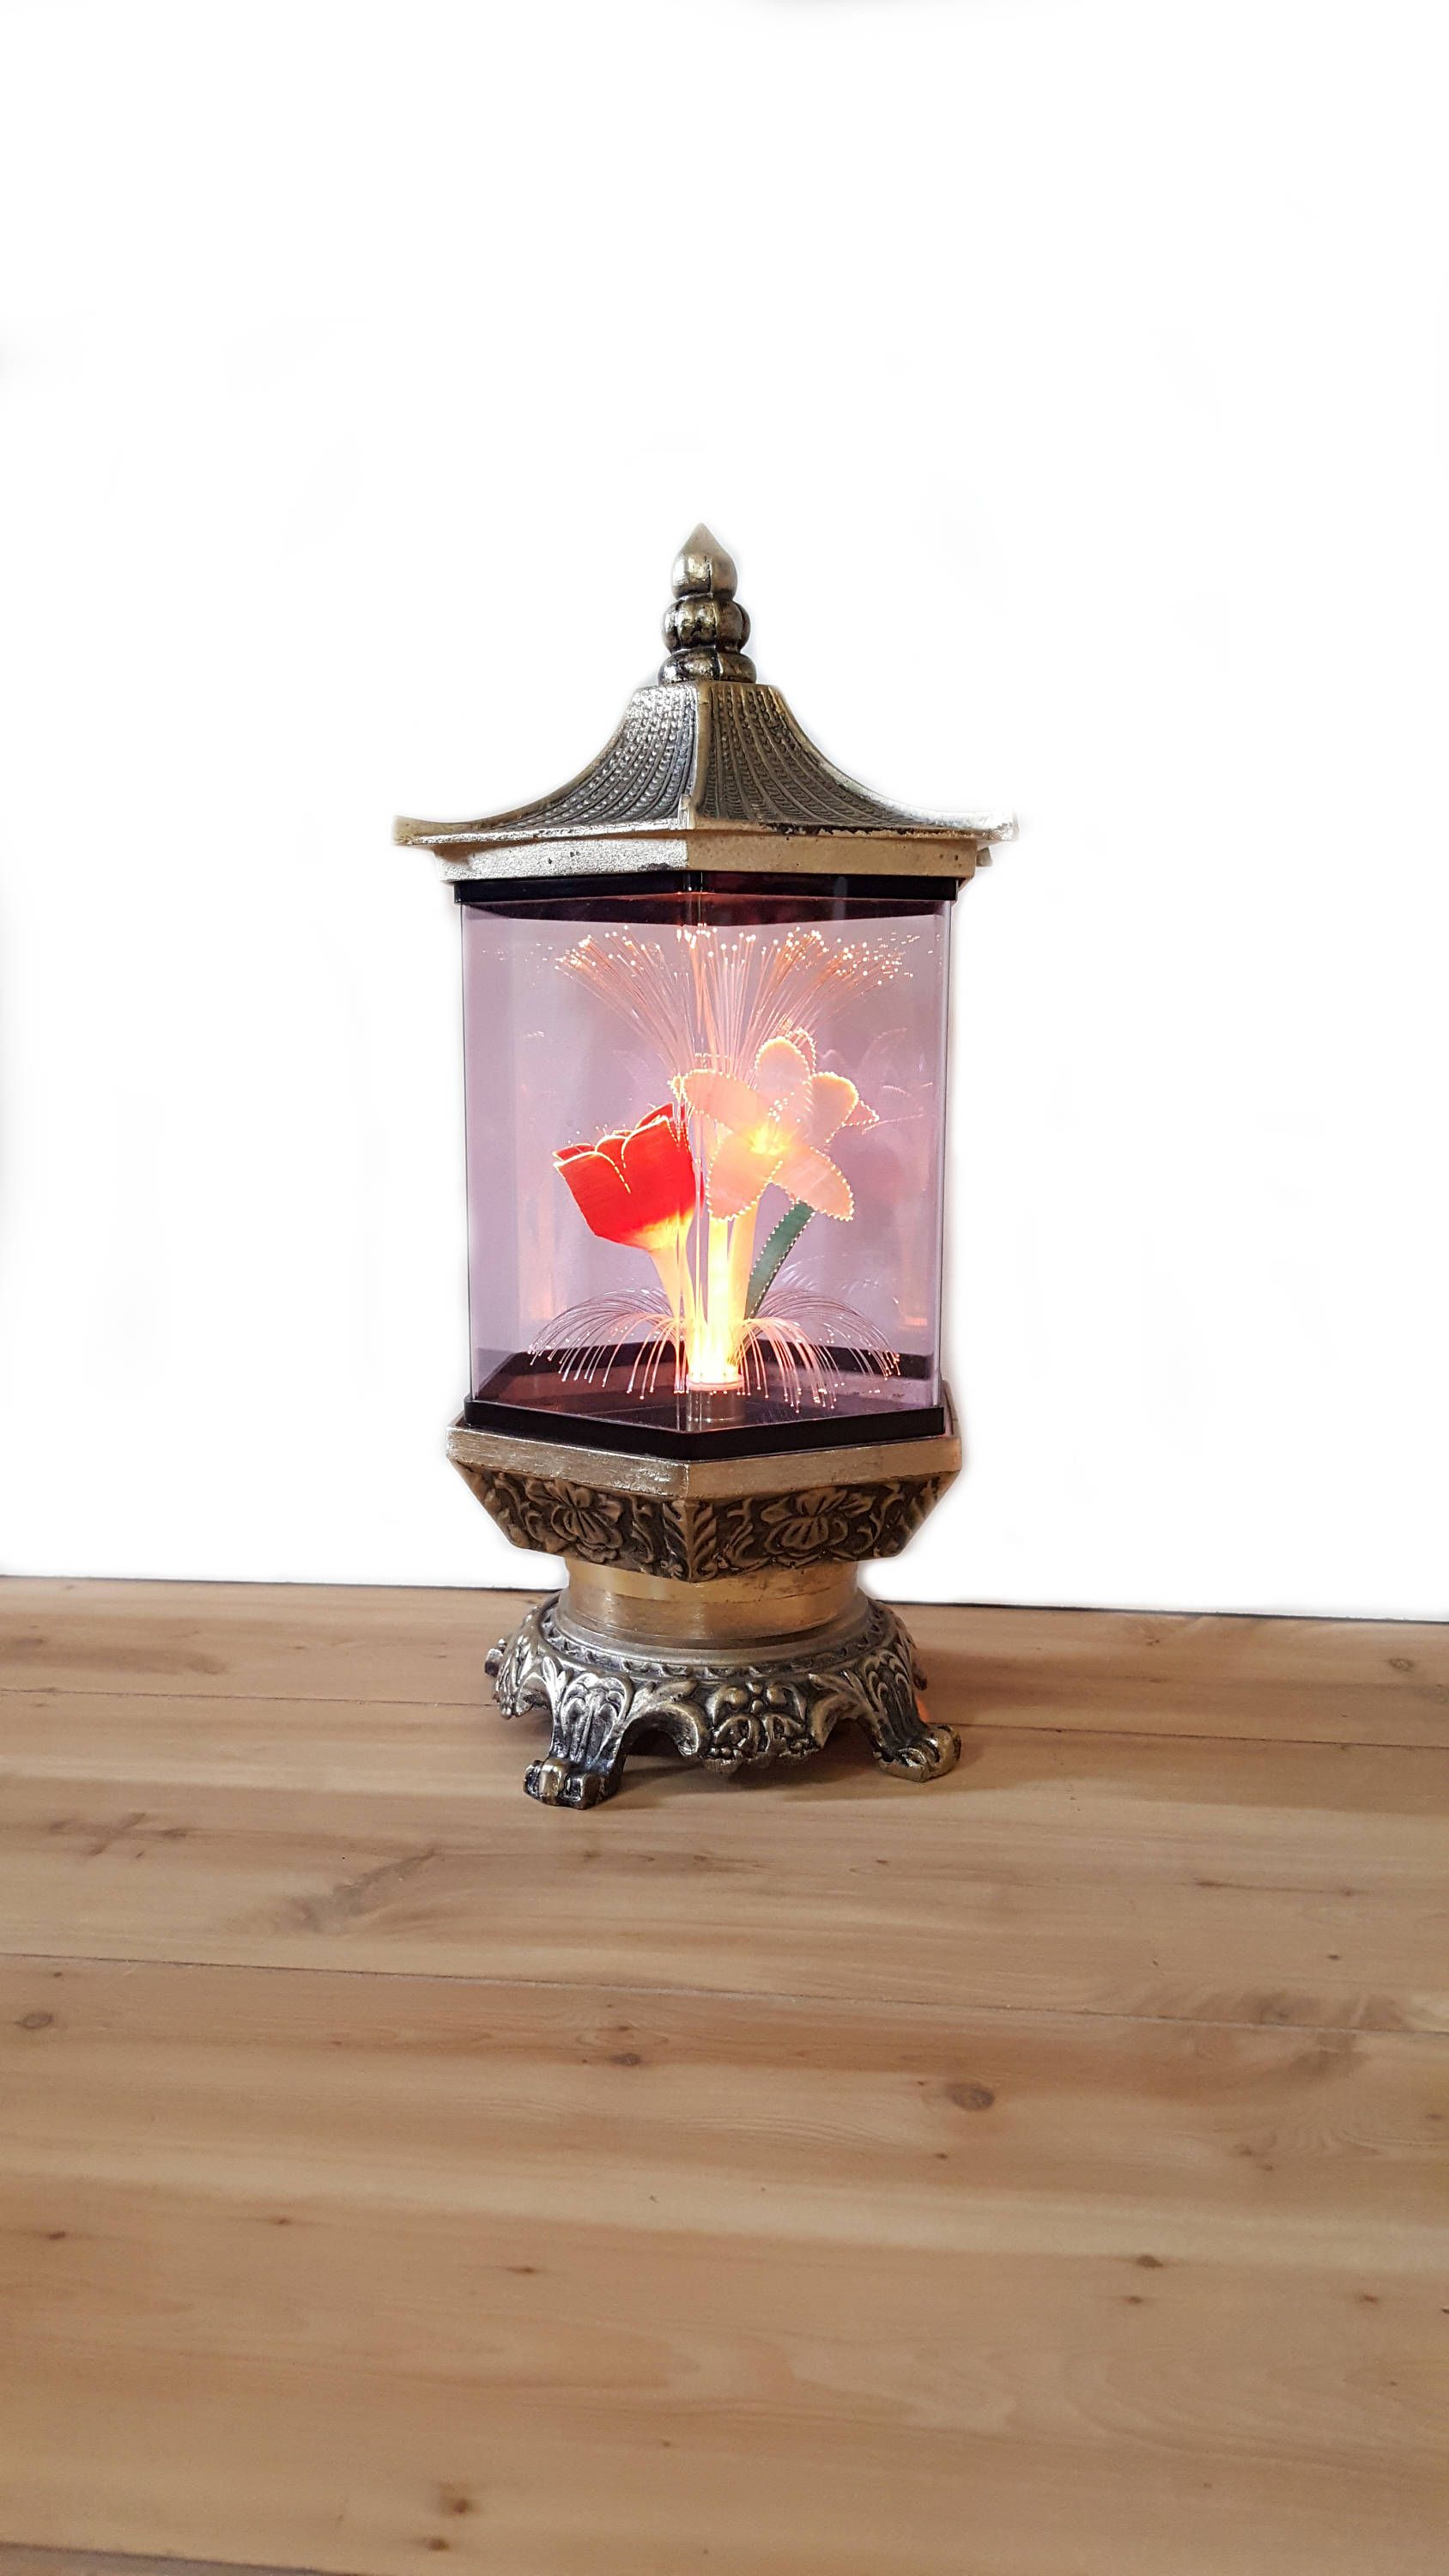 Vintage Motion Lamp Pagoda Rotating Fiber Optic Flower Color Changing Lamp Gold Asian Chinese Metal Pagoda Floor Vase Color Changing Lamp Asian Home Decor